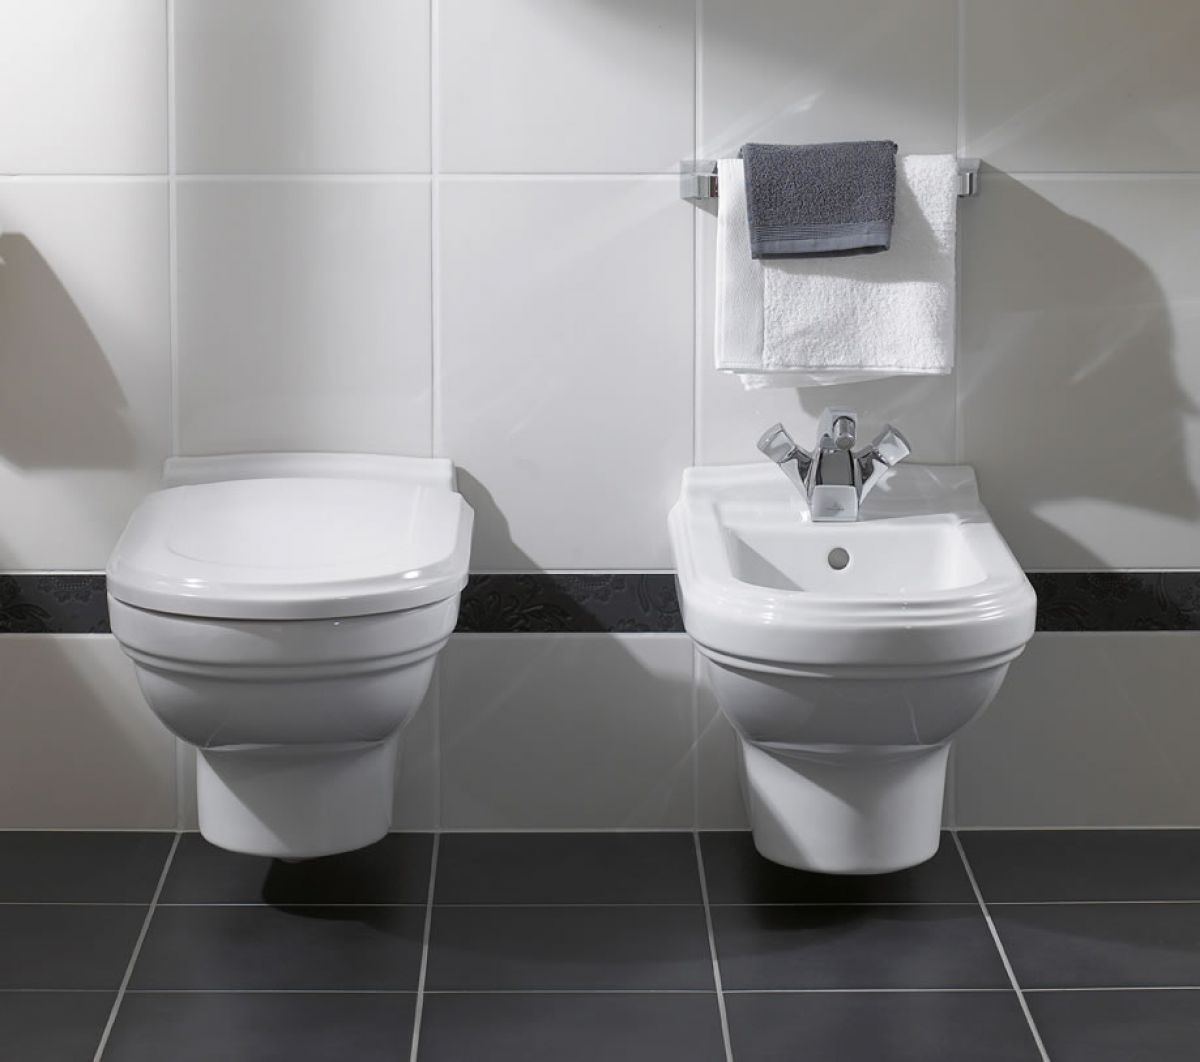 Villeroy boch hommage wall hung toilet uk bathrooms - Villeroy y bosch ...